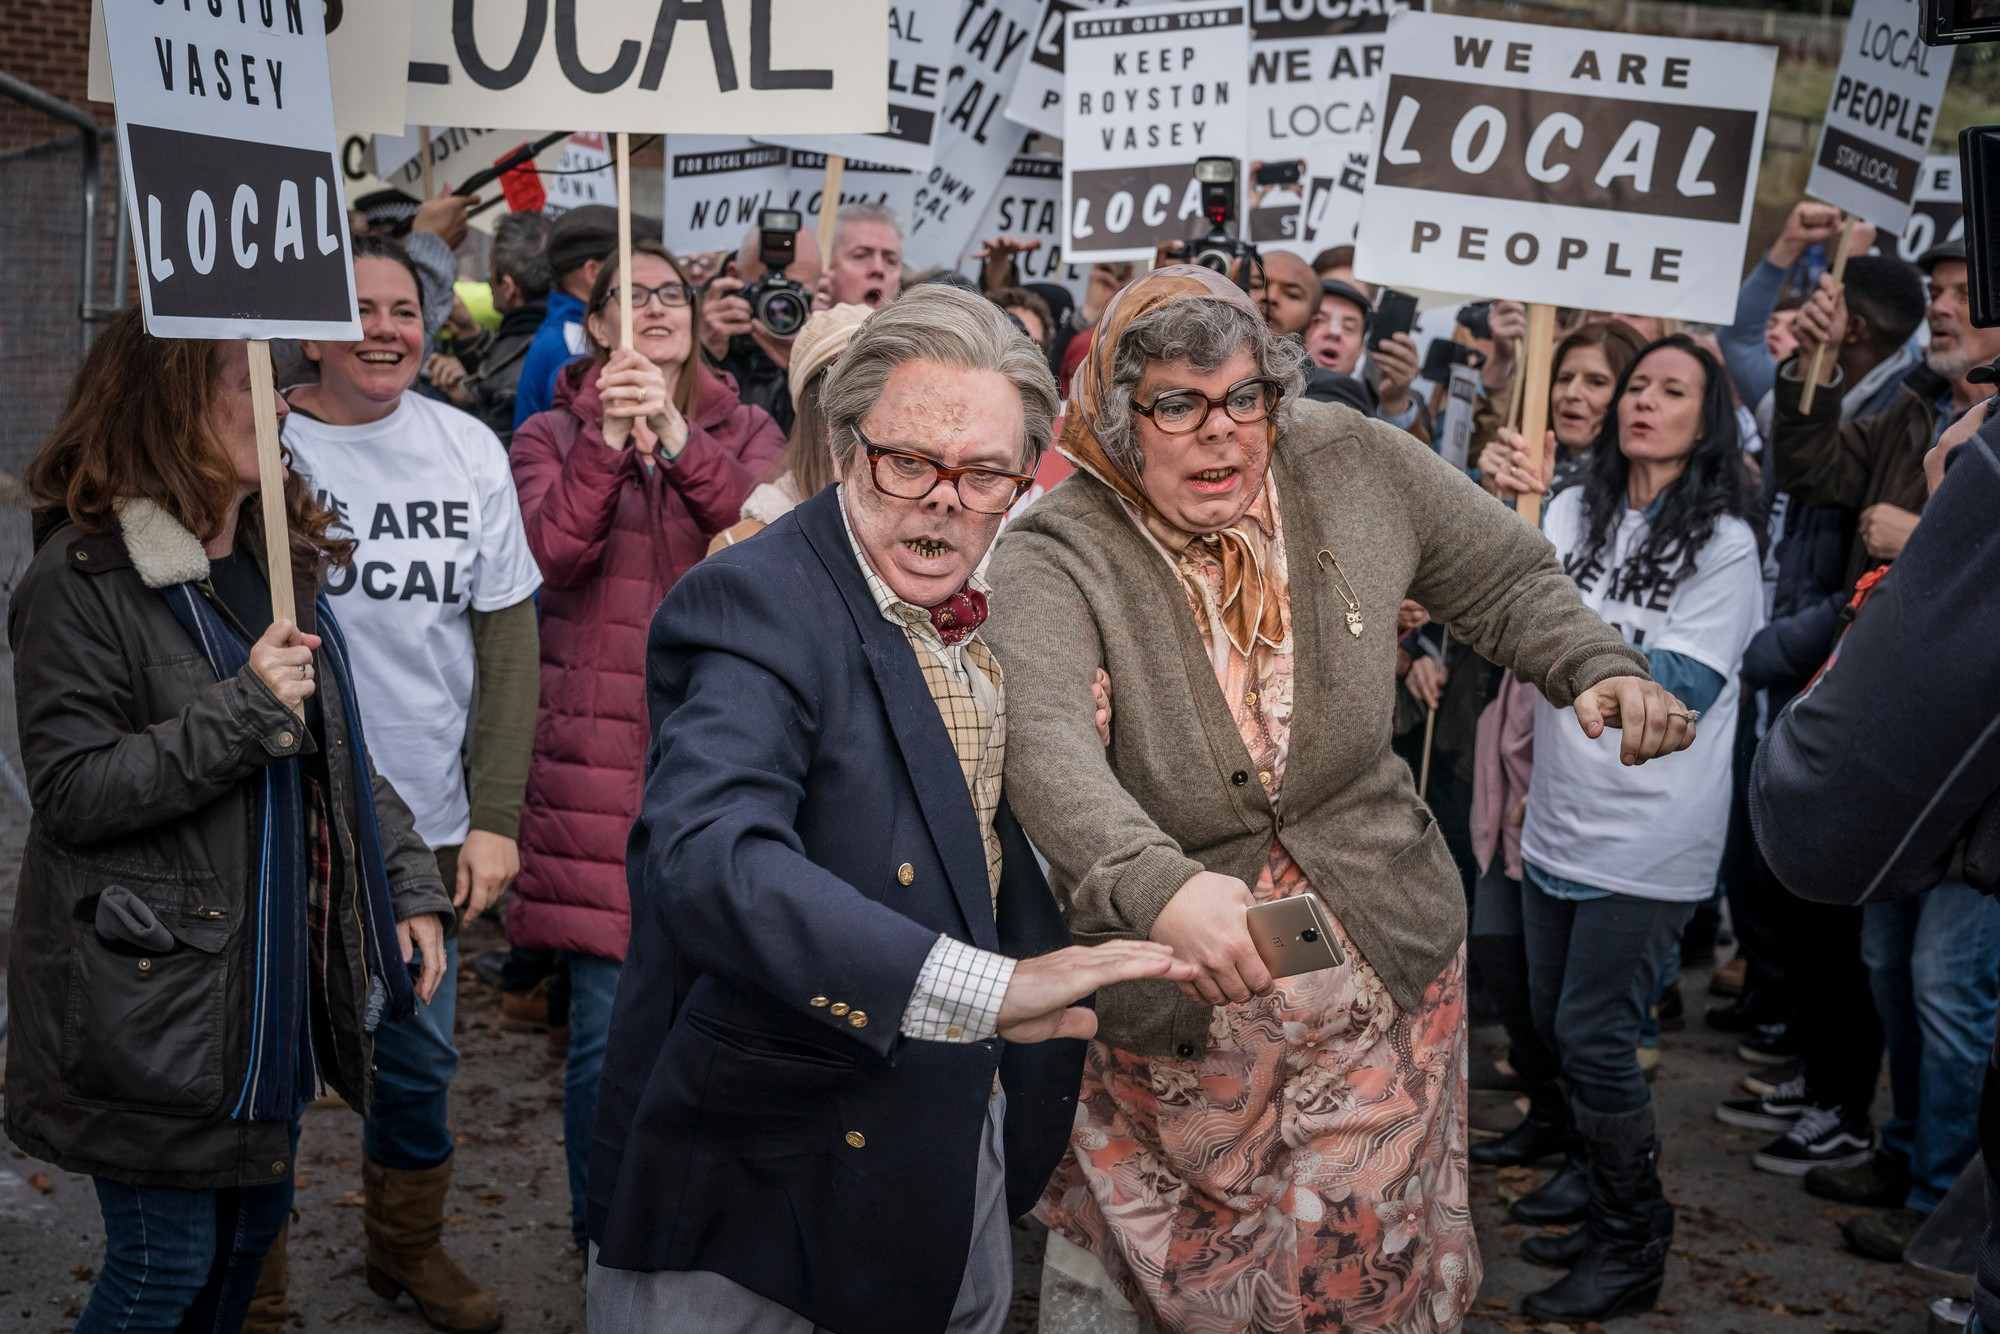 Edward (REECE SHEARSMITH), Tubbs (STEVE PEMBERTON) in The League of Gentlemen 20th anniversary special (BBC Pictures)